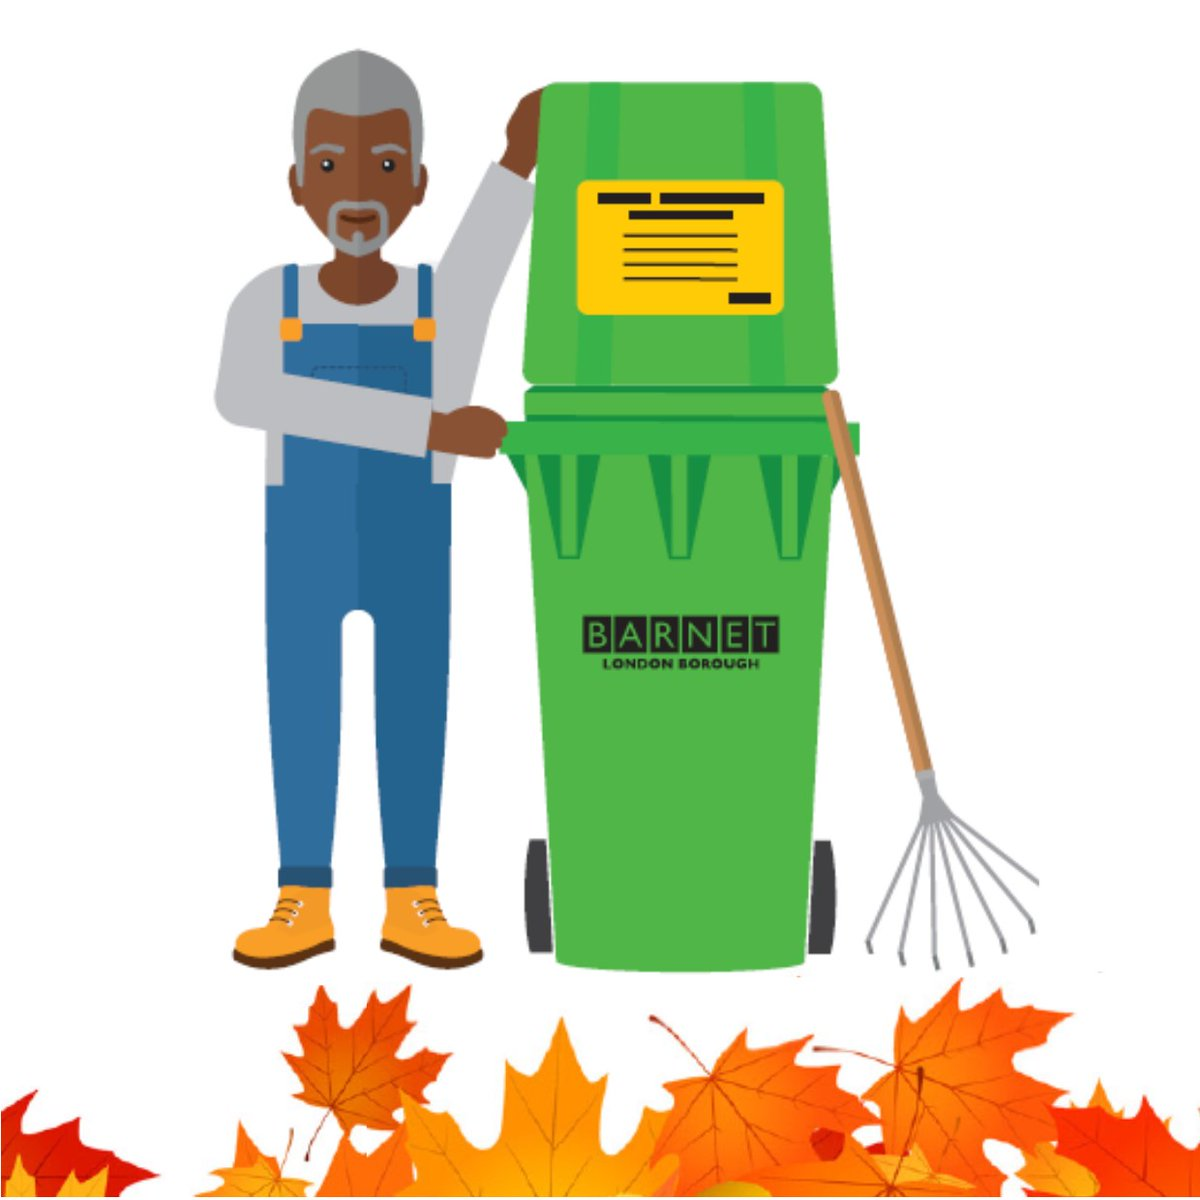 We have introduced two autumn offers for garden waste collections.  You can now sign up for collections until 2 May 2021 for £40  If you do not wish to sign up and don't want your green bin, we can remove it. Each bin costs £10 to remove.  Find out more: https://t.co/lKLpIoobQp https://t.co/OhrPlxBayz